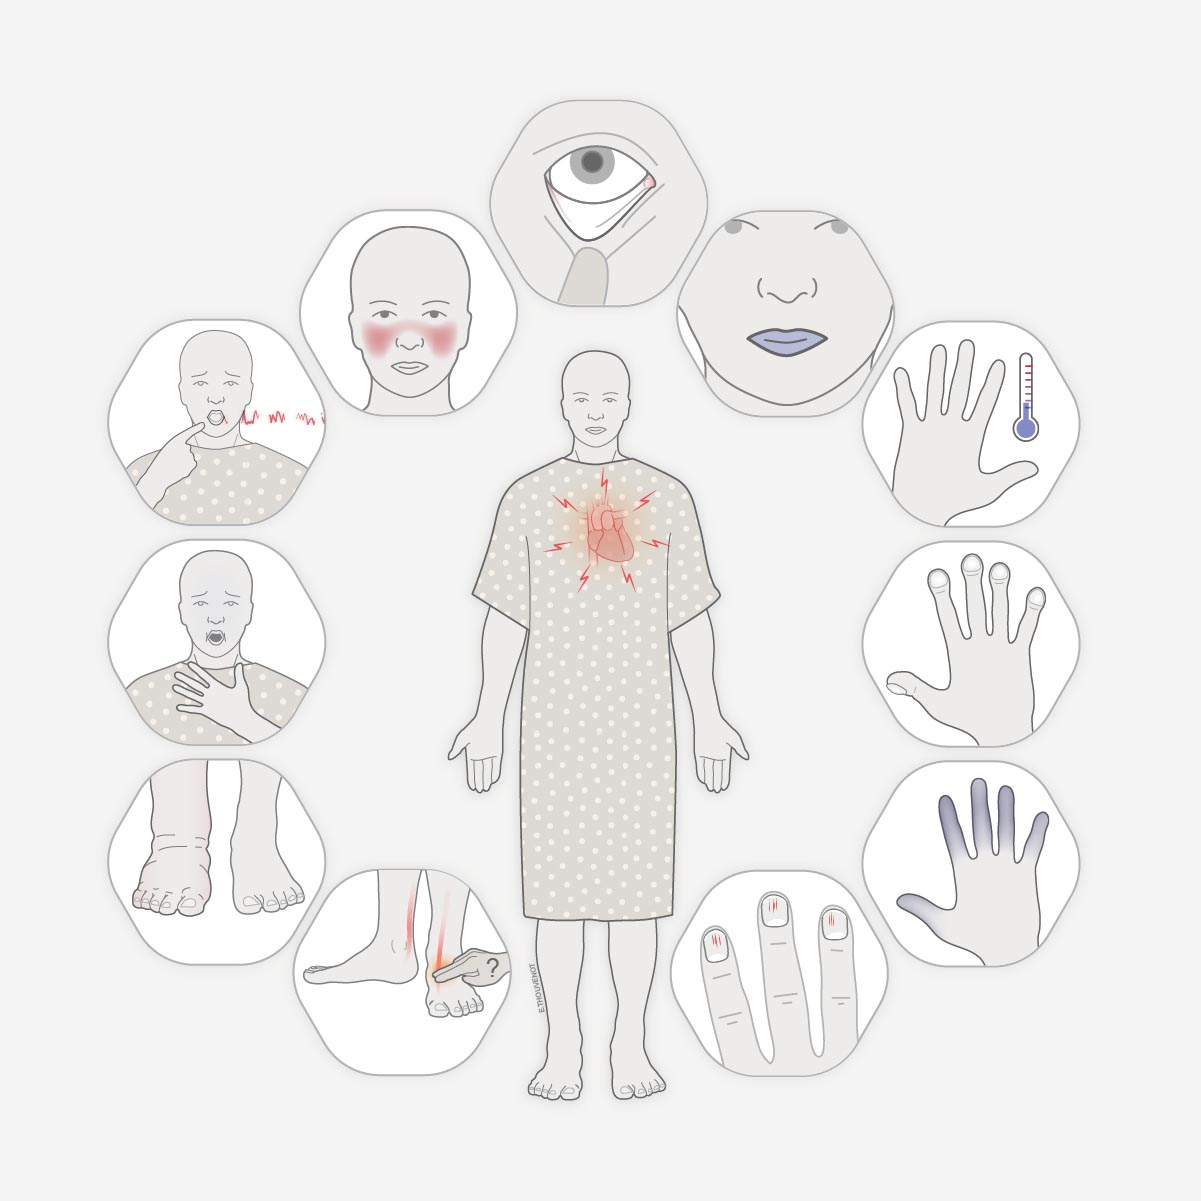 Teaching Clinical Skills: the Cardiac Exam   A series of e-learning guides designed to teach basic skill to health professional in under-resourced communities worldwide.